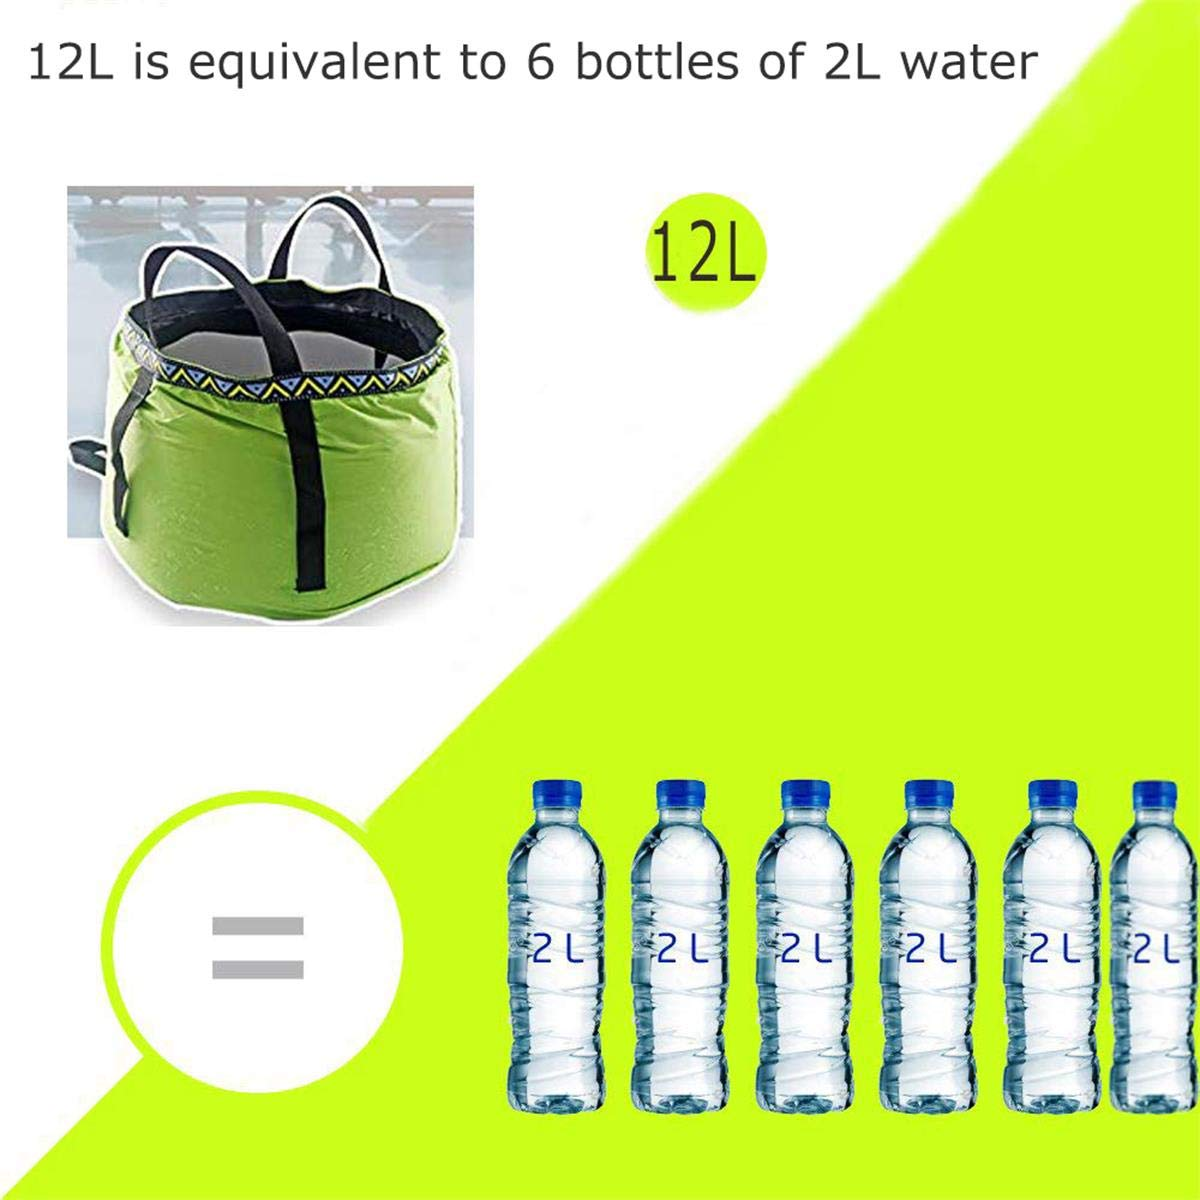 Lightweight and Durable Compact Collapsible Foldable Water Bucket Container for Camping Hiking Fishing Travelling etc. GKSELLING 12L Portable Folding Wash Basin